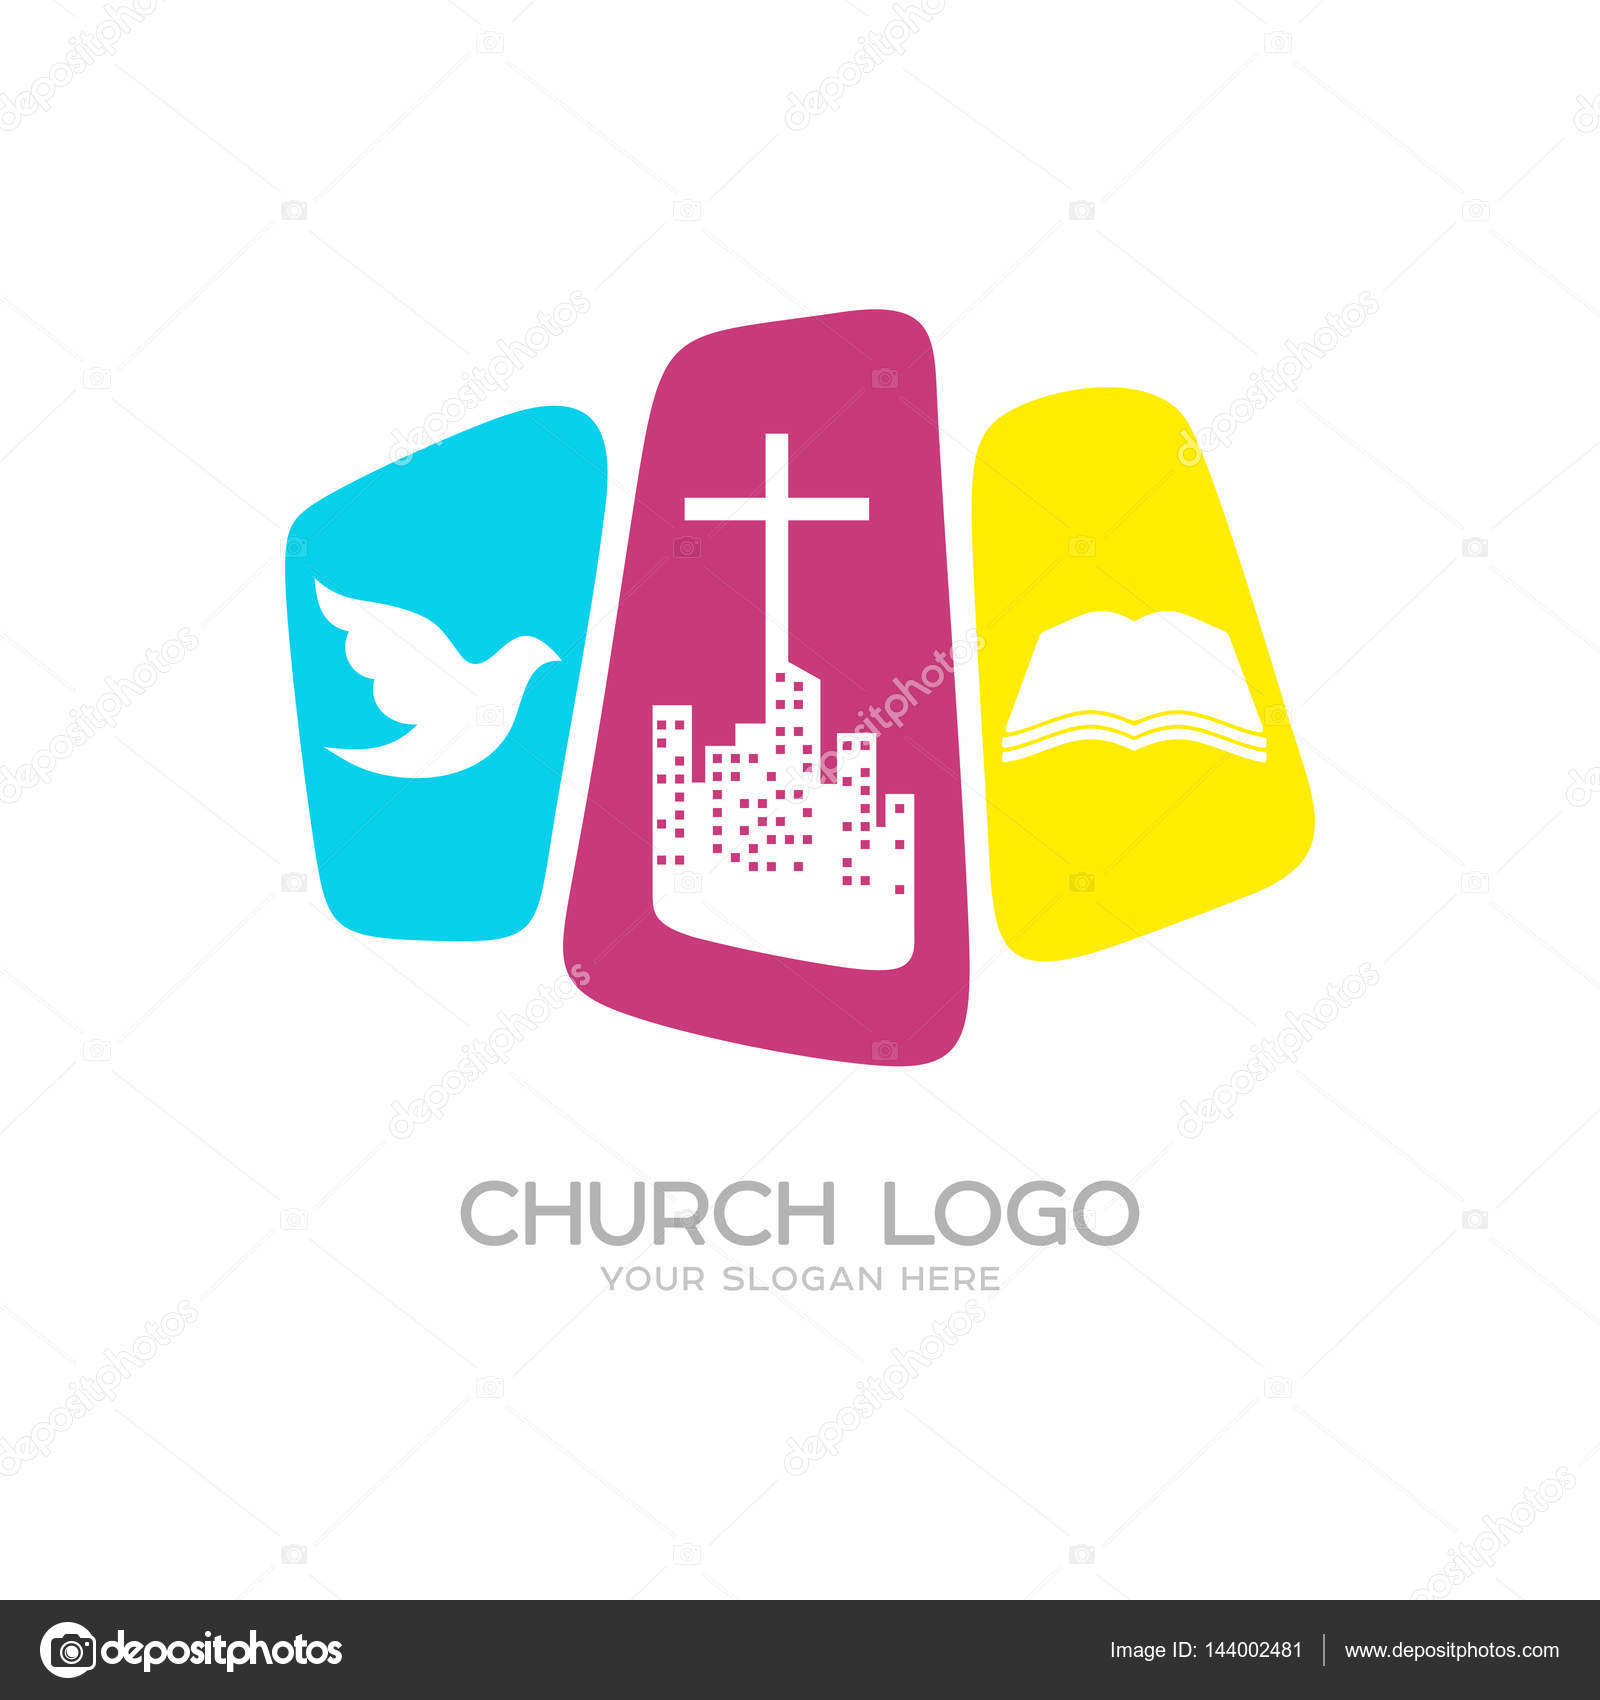 Church logo christian symbols the city and the cross of jesus church logo christian symbols the city and the cross of jesus christ a dove the holy spirit and the bible vector by biblebox altavistaventures Choice Image